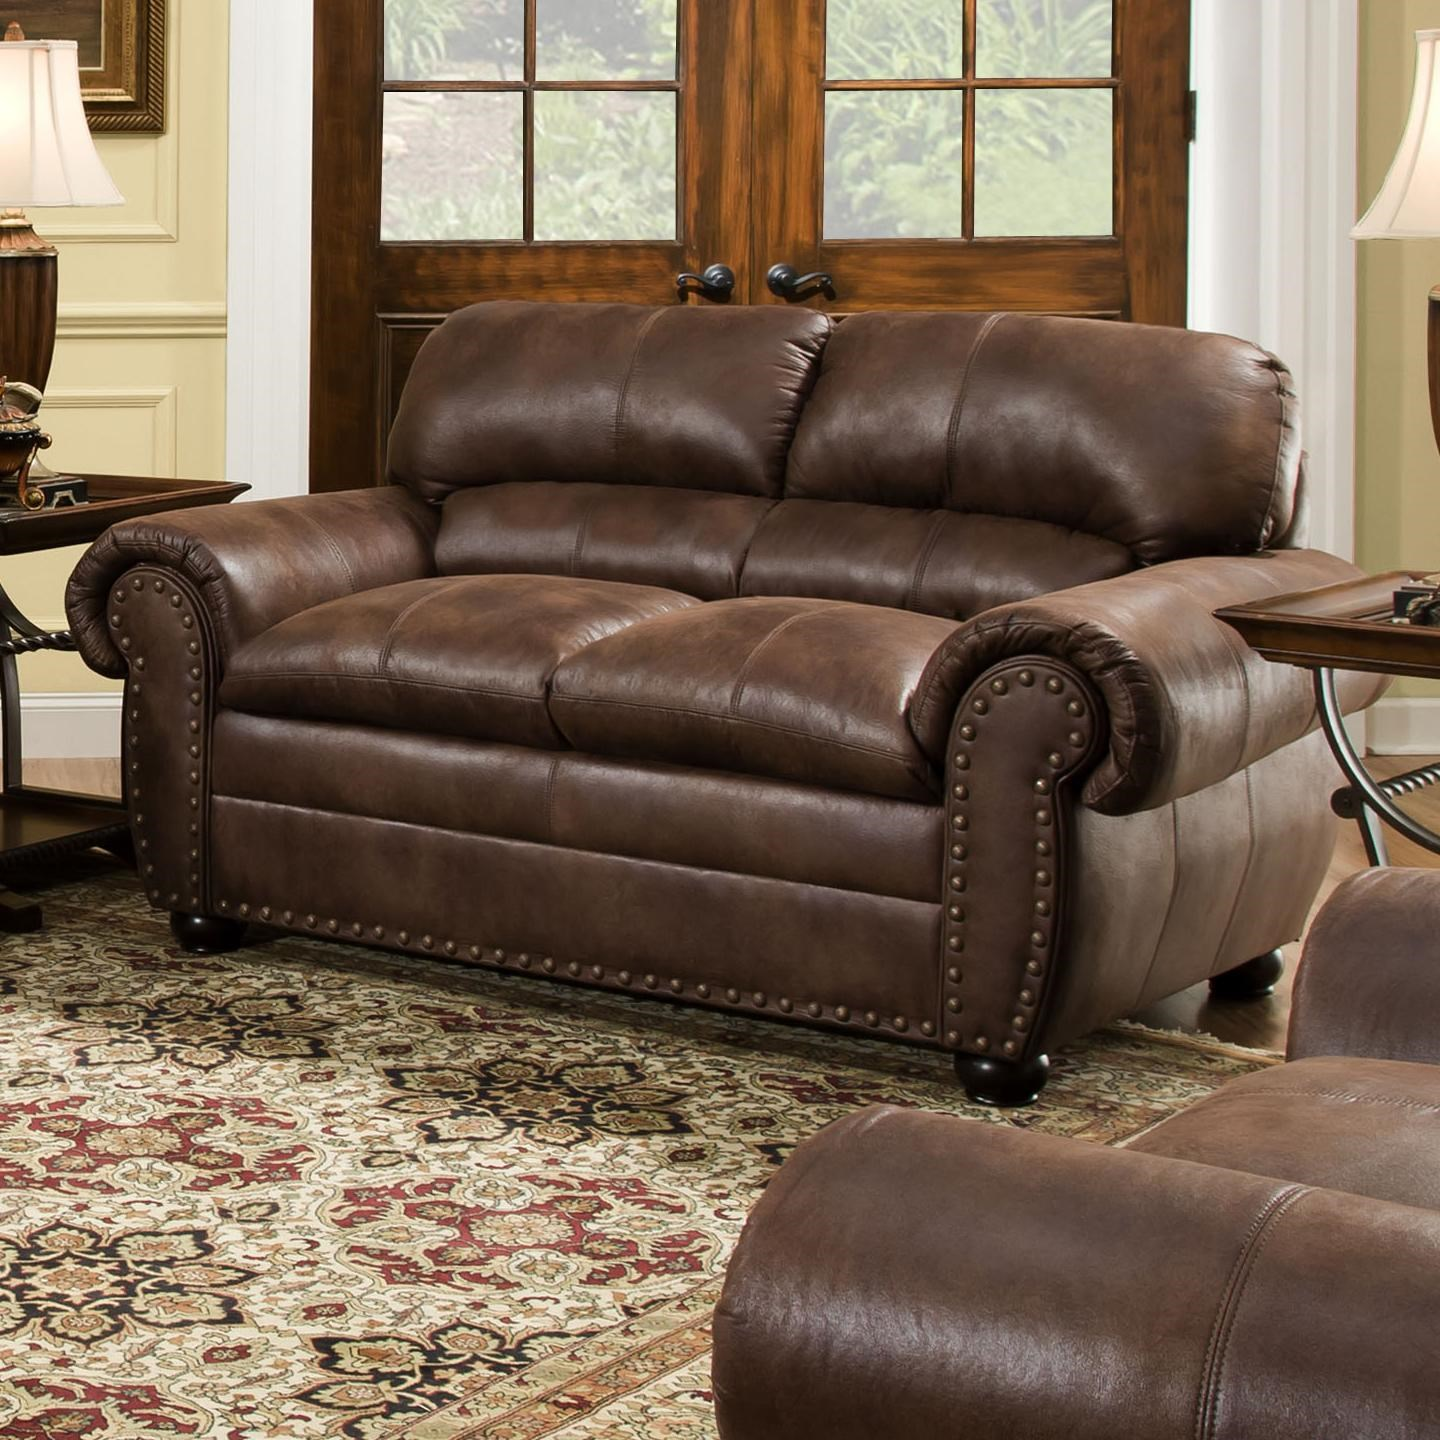 Beau United Furniture Industries 7510Casual Loveseat ...